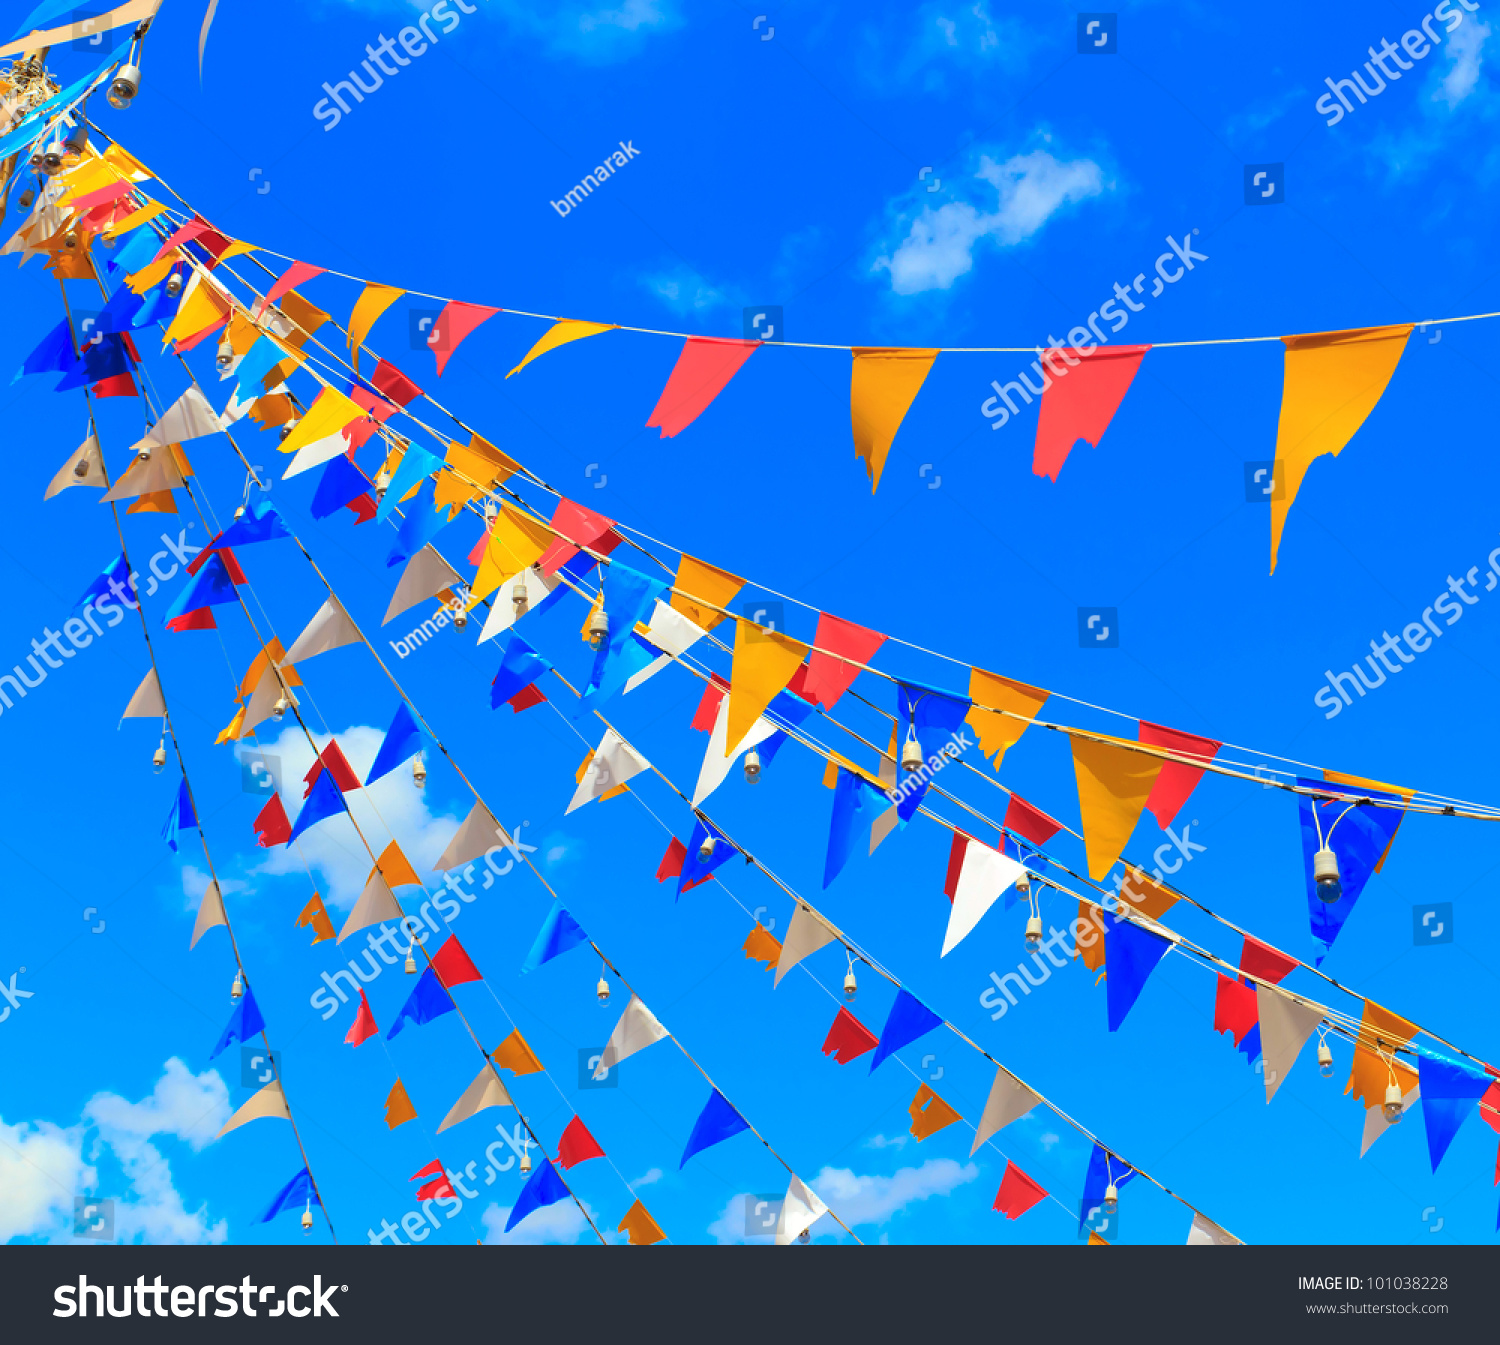 colorful small triangular decorative flags pennons - Decorative Flags